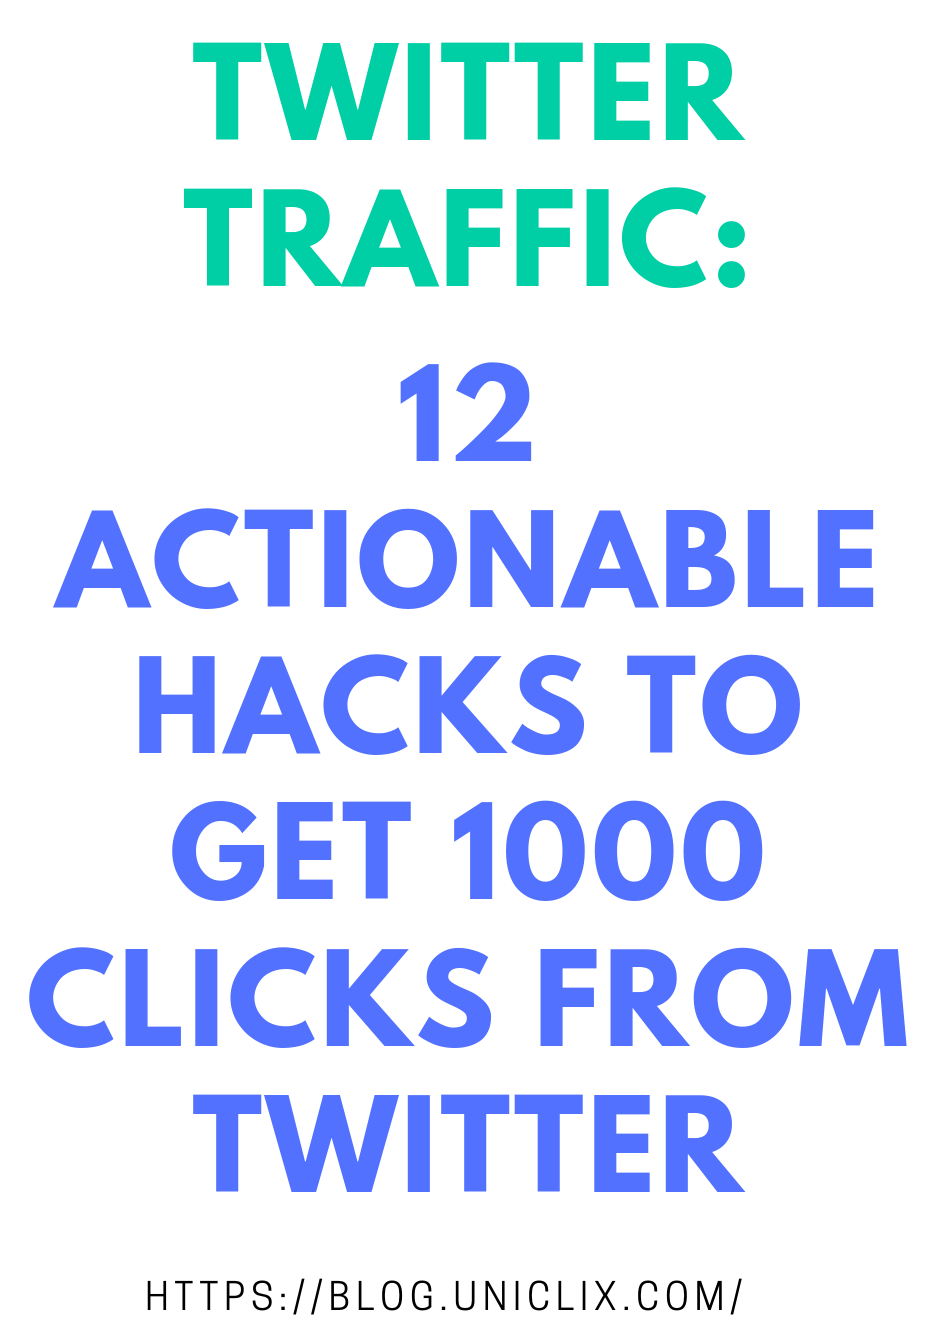 Twitter Traffic: 12 Actionable Hacks to Get 1000 Clicks from Twitter